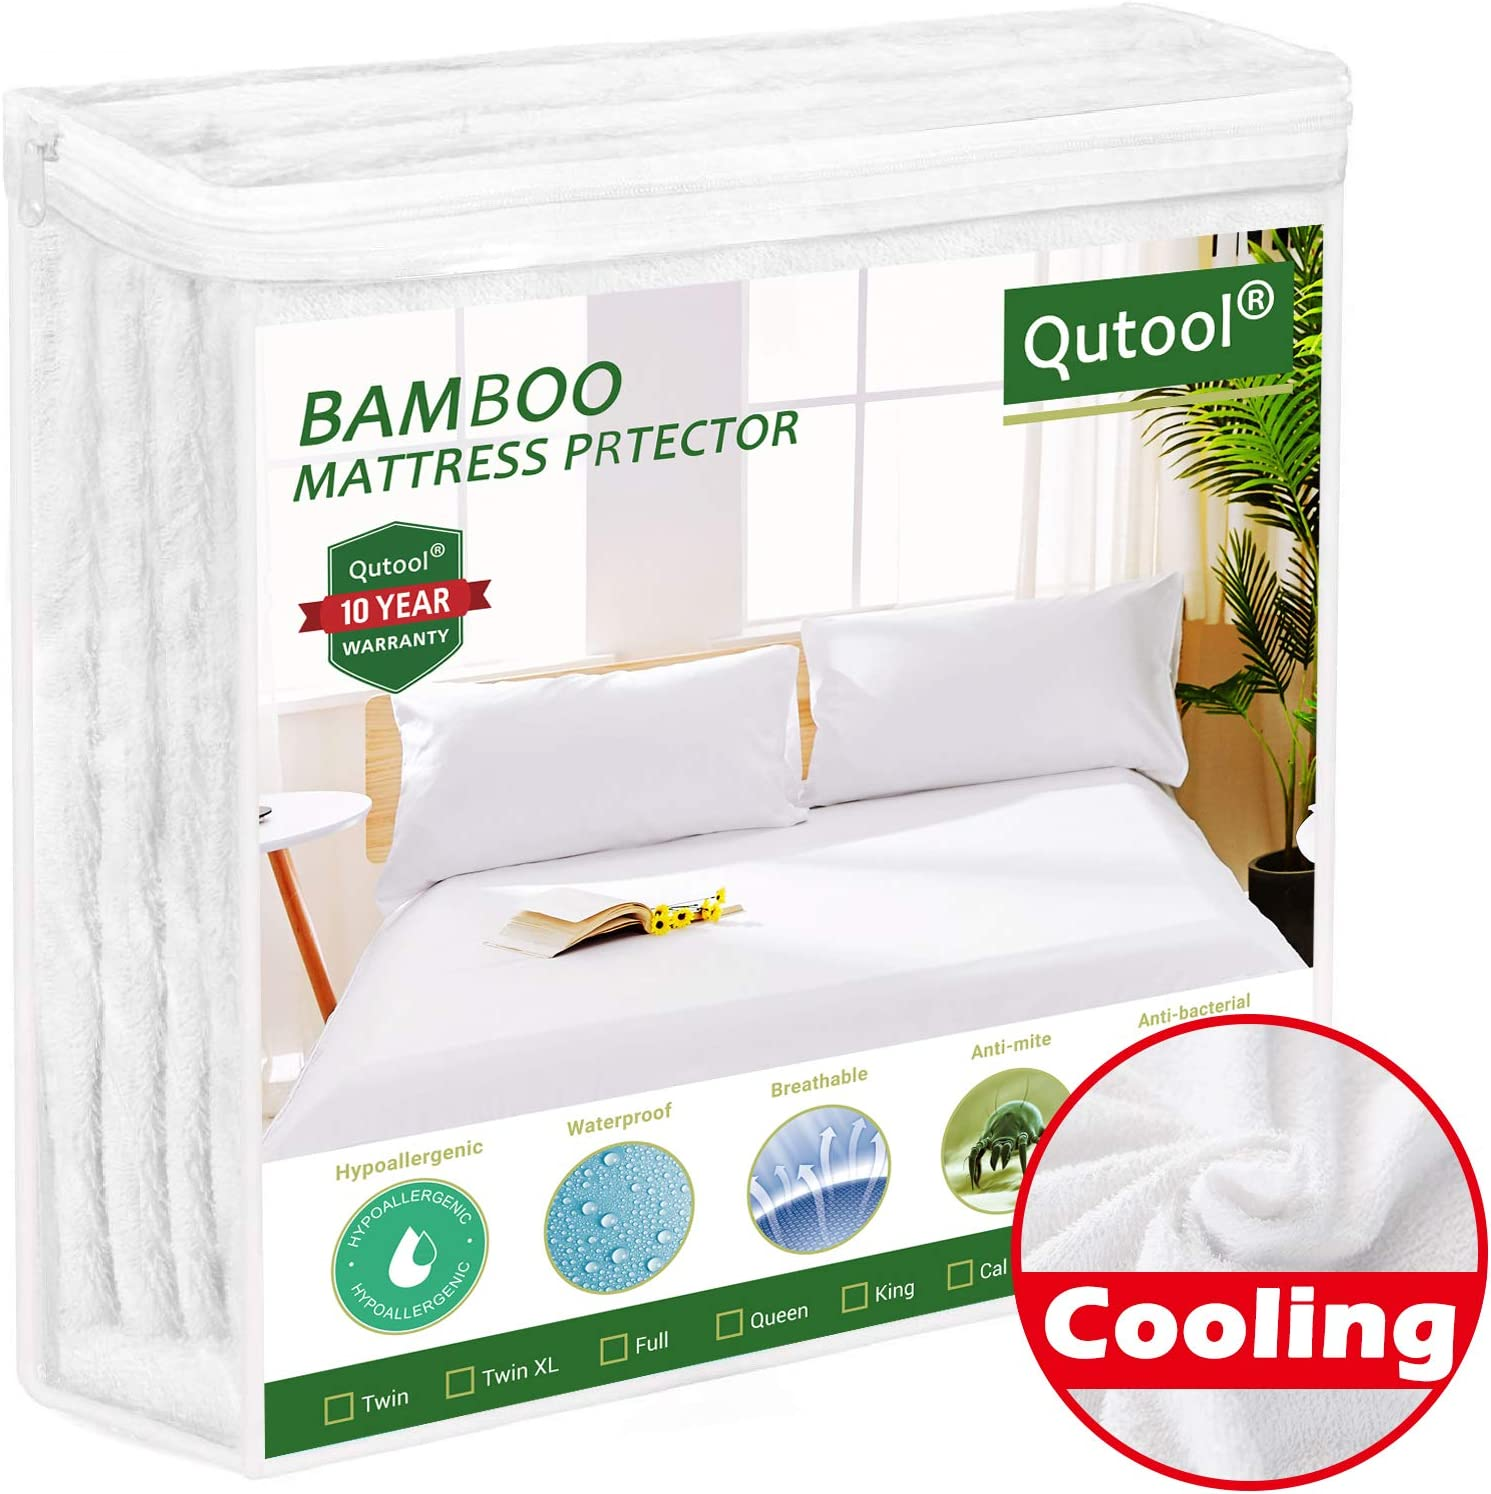 "Bedbug Mattress Protector King Size 100% Waterproof Bamboo Mattress Protector Cooing Mattress Pad Cover Fitted 8""-21"" Deep Pocket - Bed Sheet Cover, Hypoallergenic, Breathable, Noiseless, Vinyl Free"